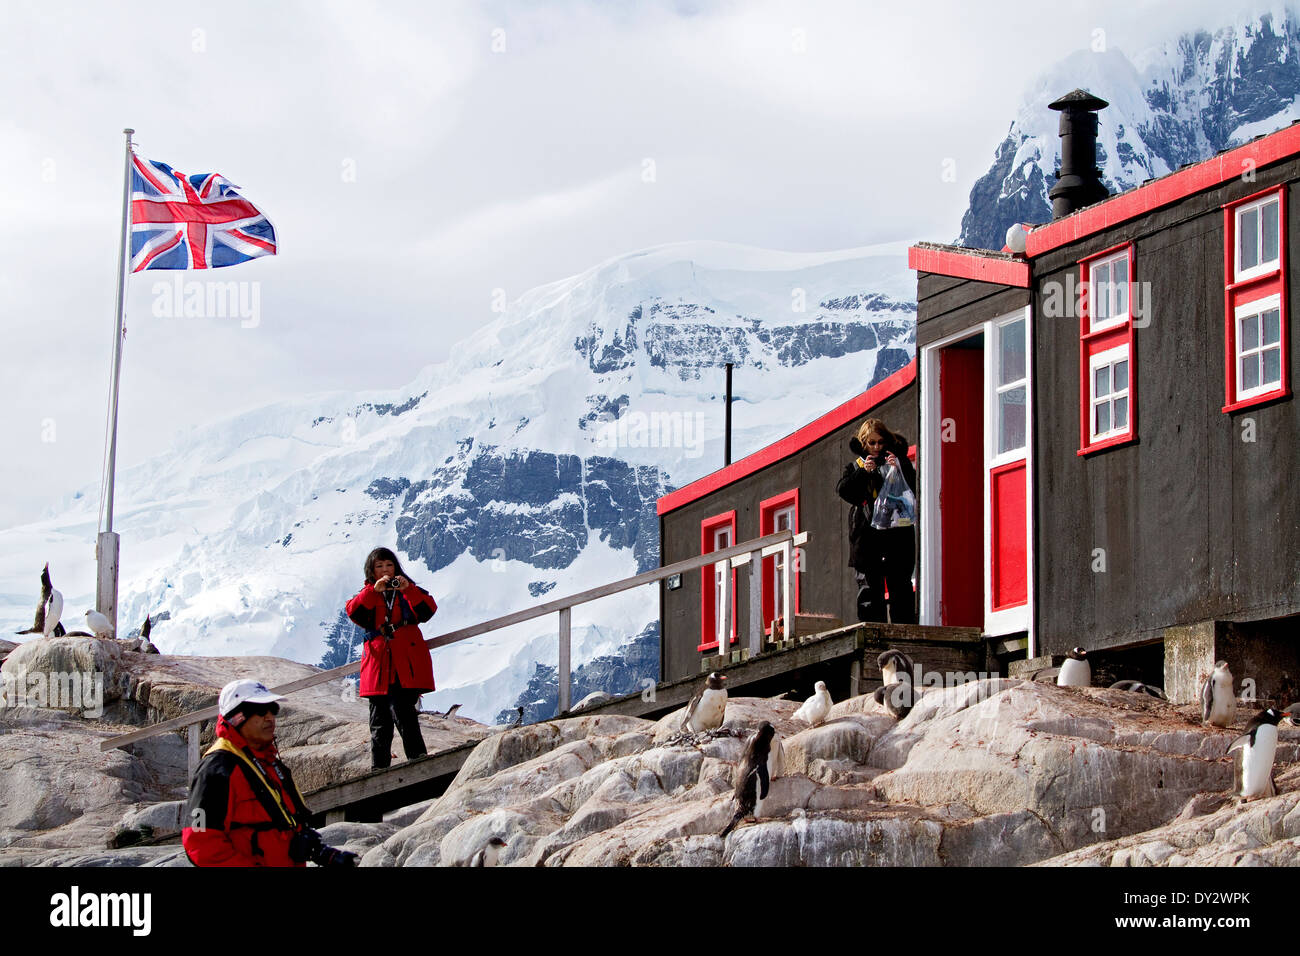 Antarctique photos antarctique images alamy - Bureau de poste charenton le pont ...